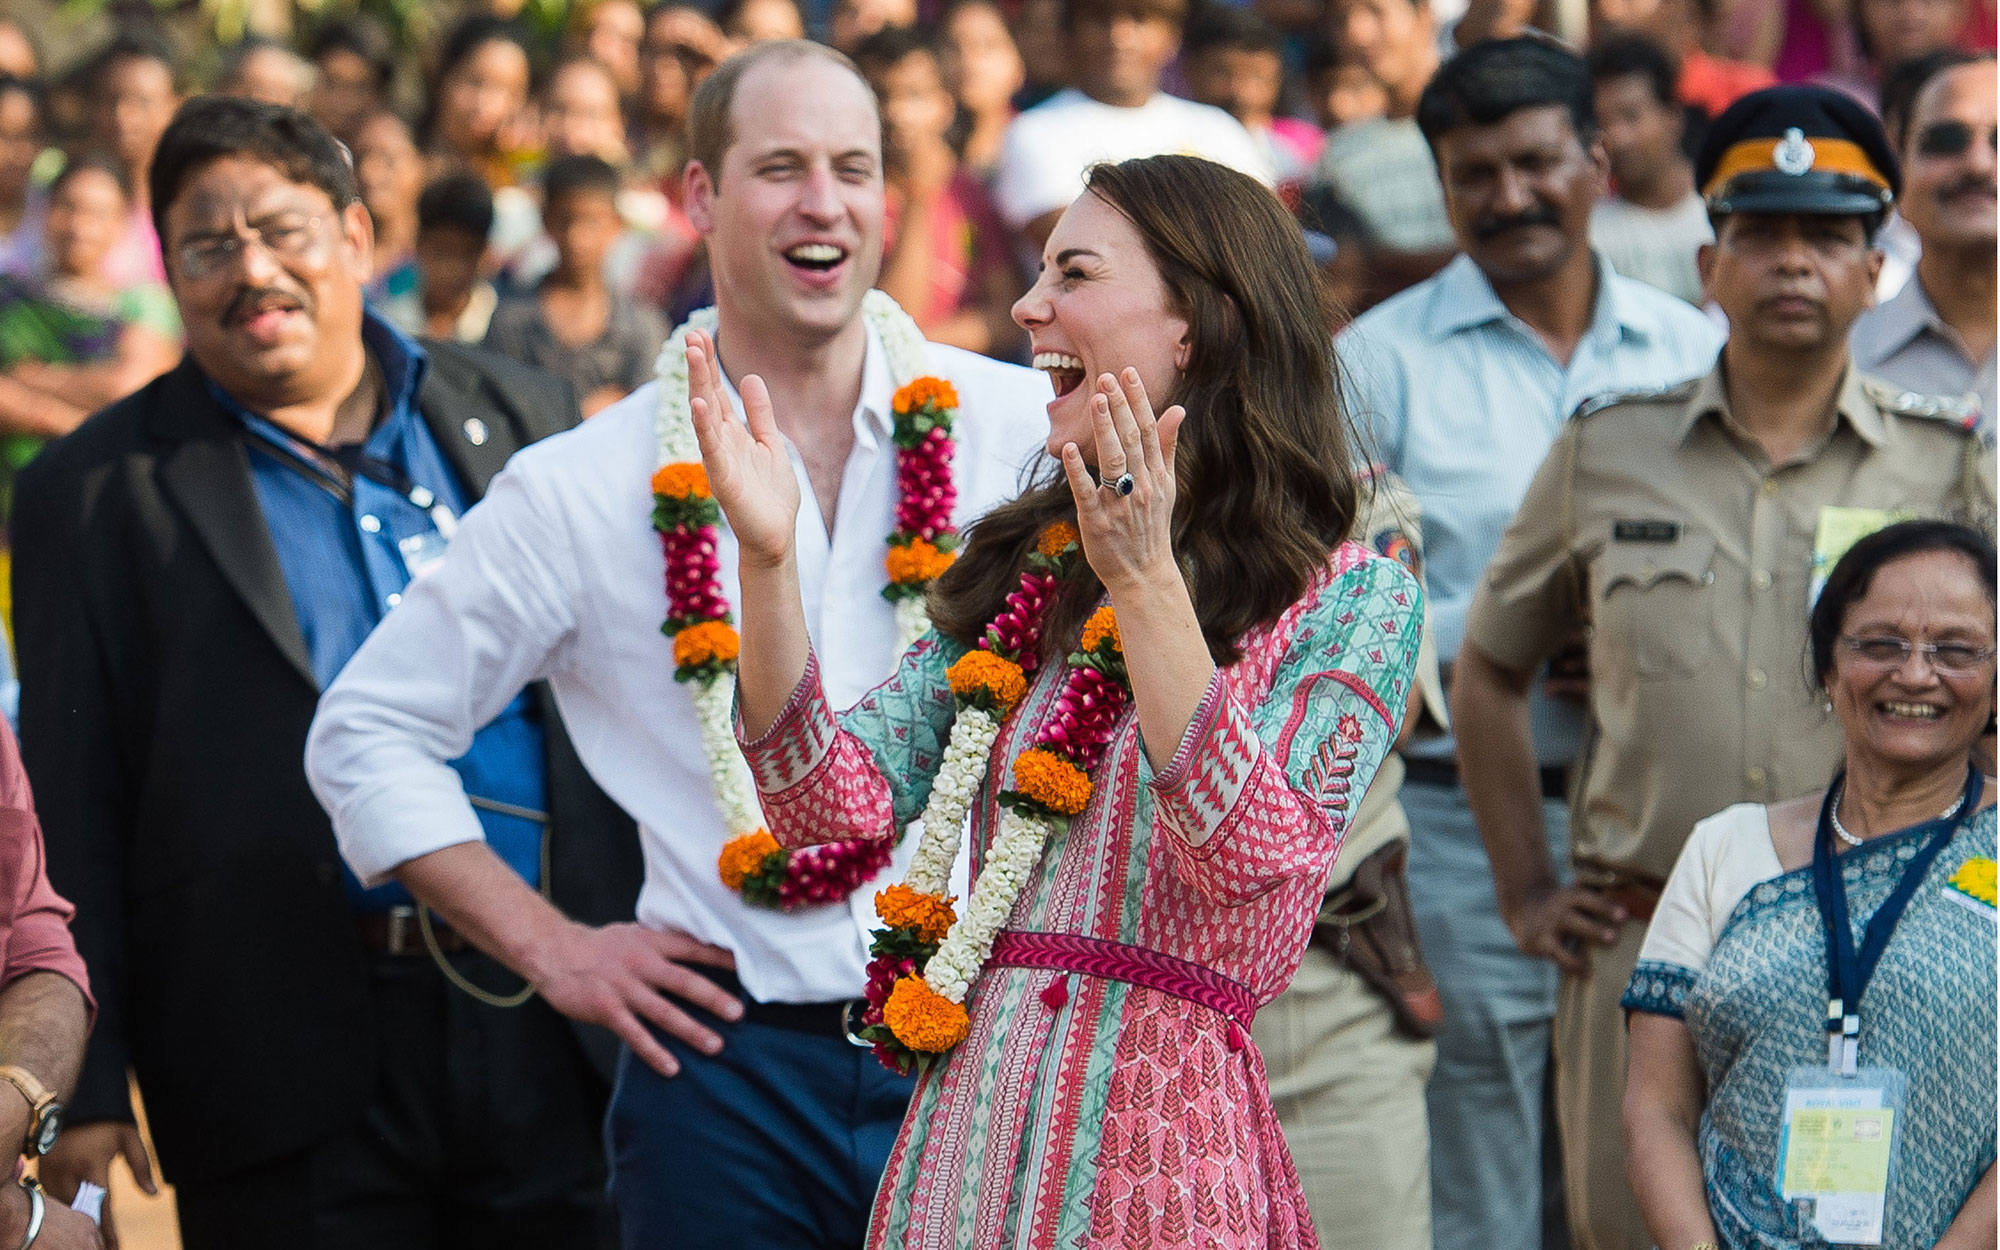 Prince William and Kate Middleton Embark on their Royal Tour of India and Bhutan: Visiting Historic Sites